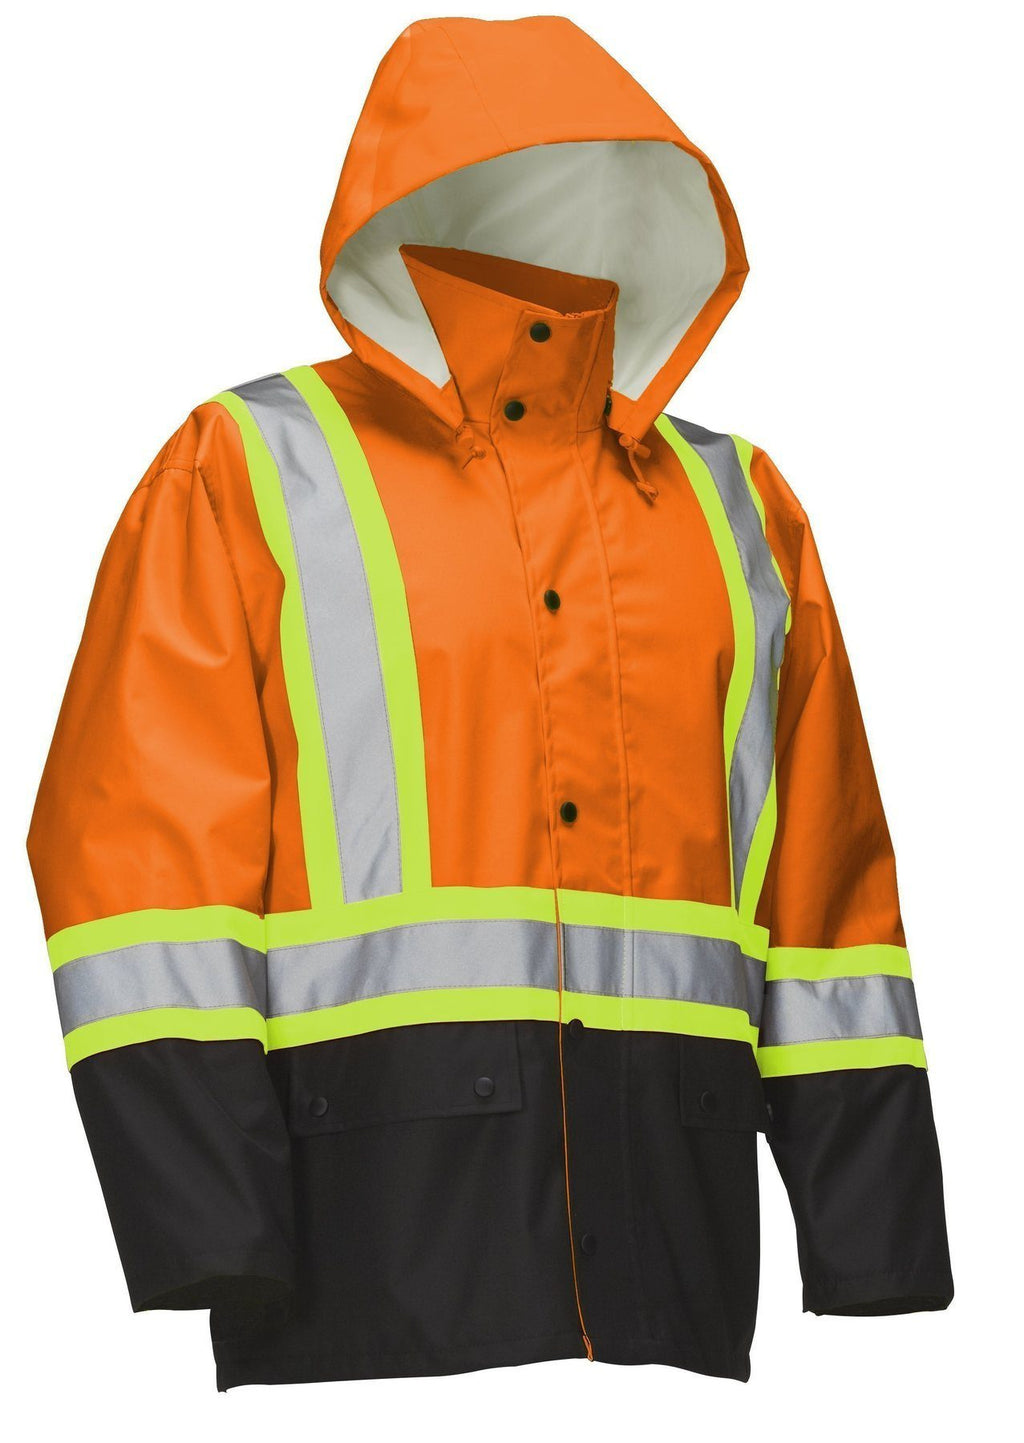 Forcefield - Safety Rain Jacket - 023-HVRJORT - Orange